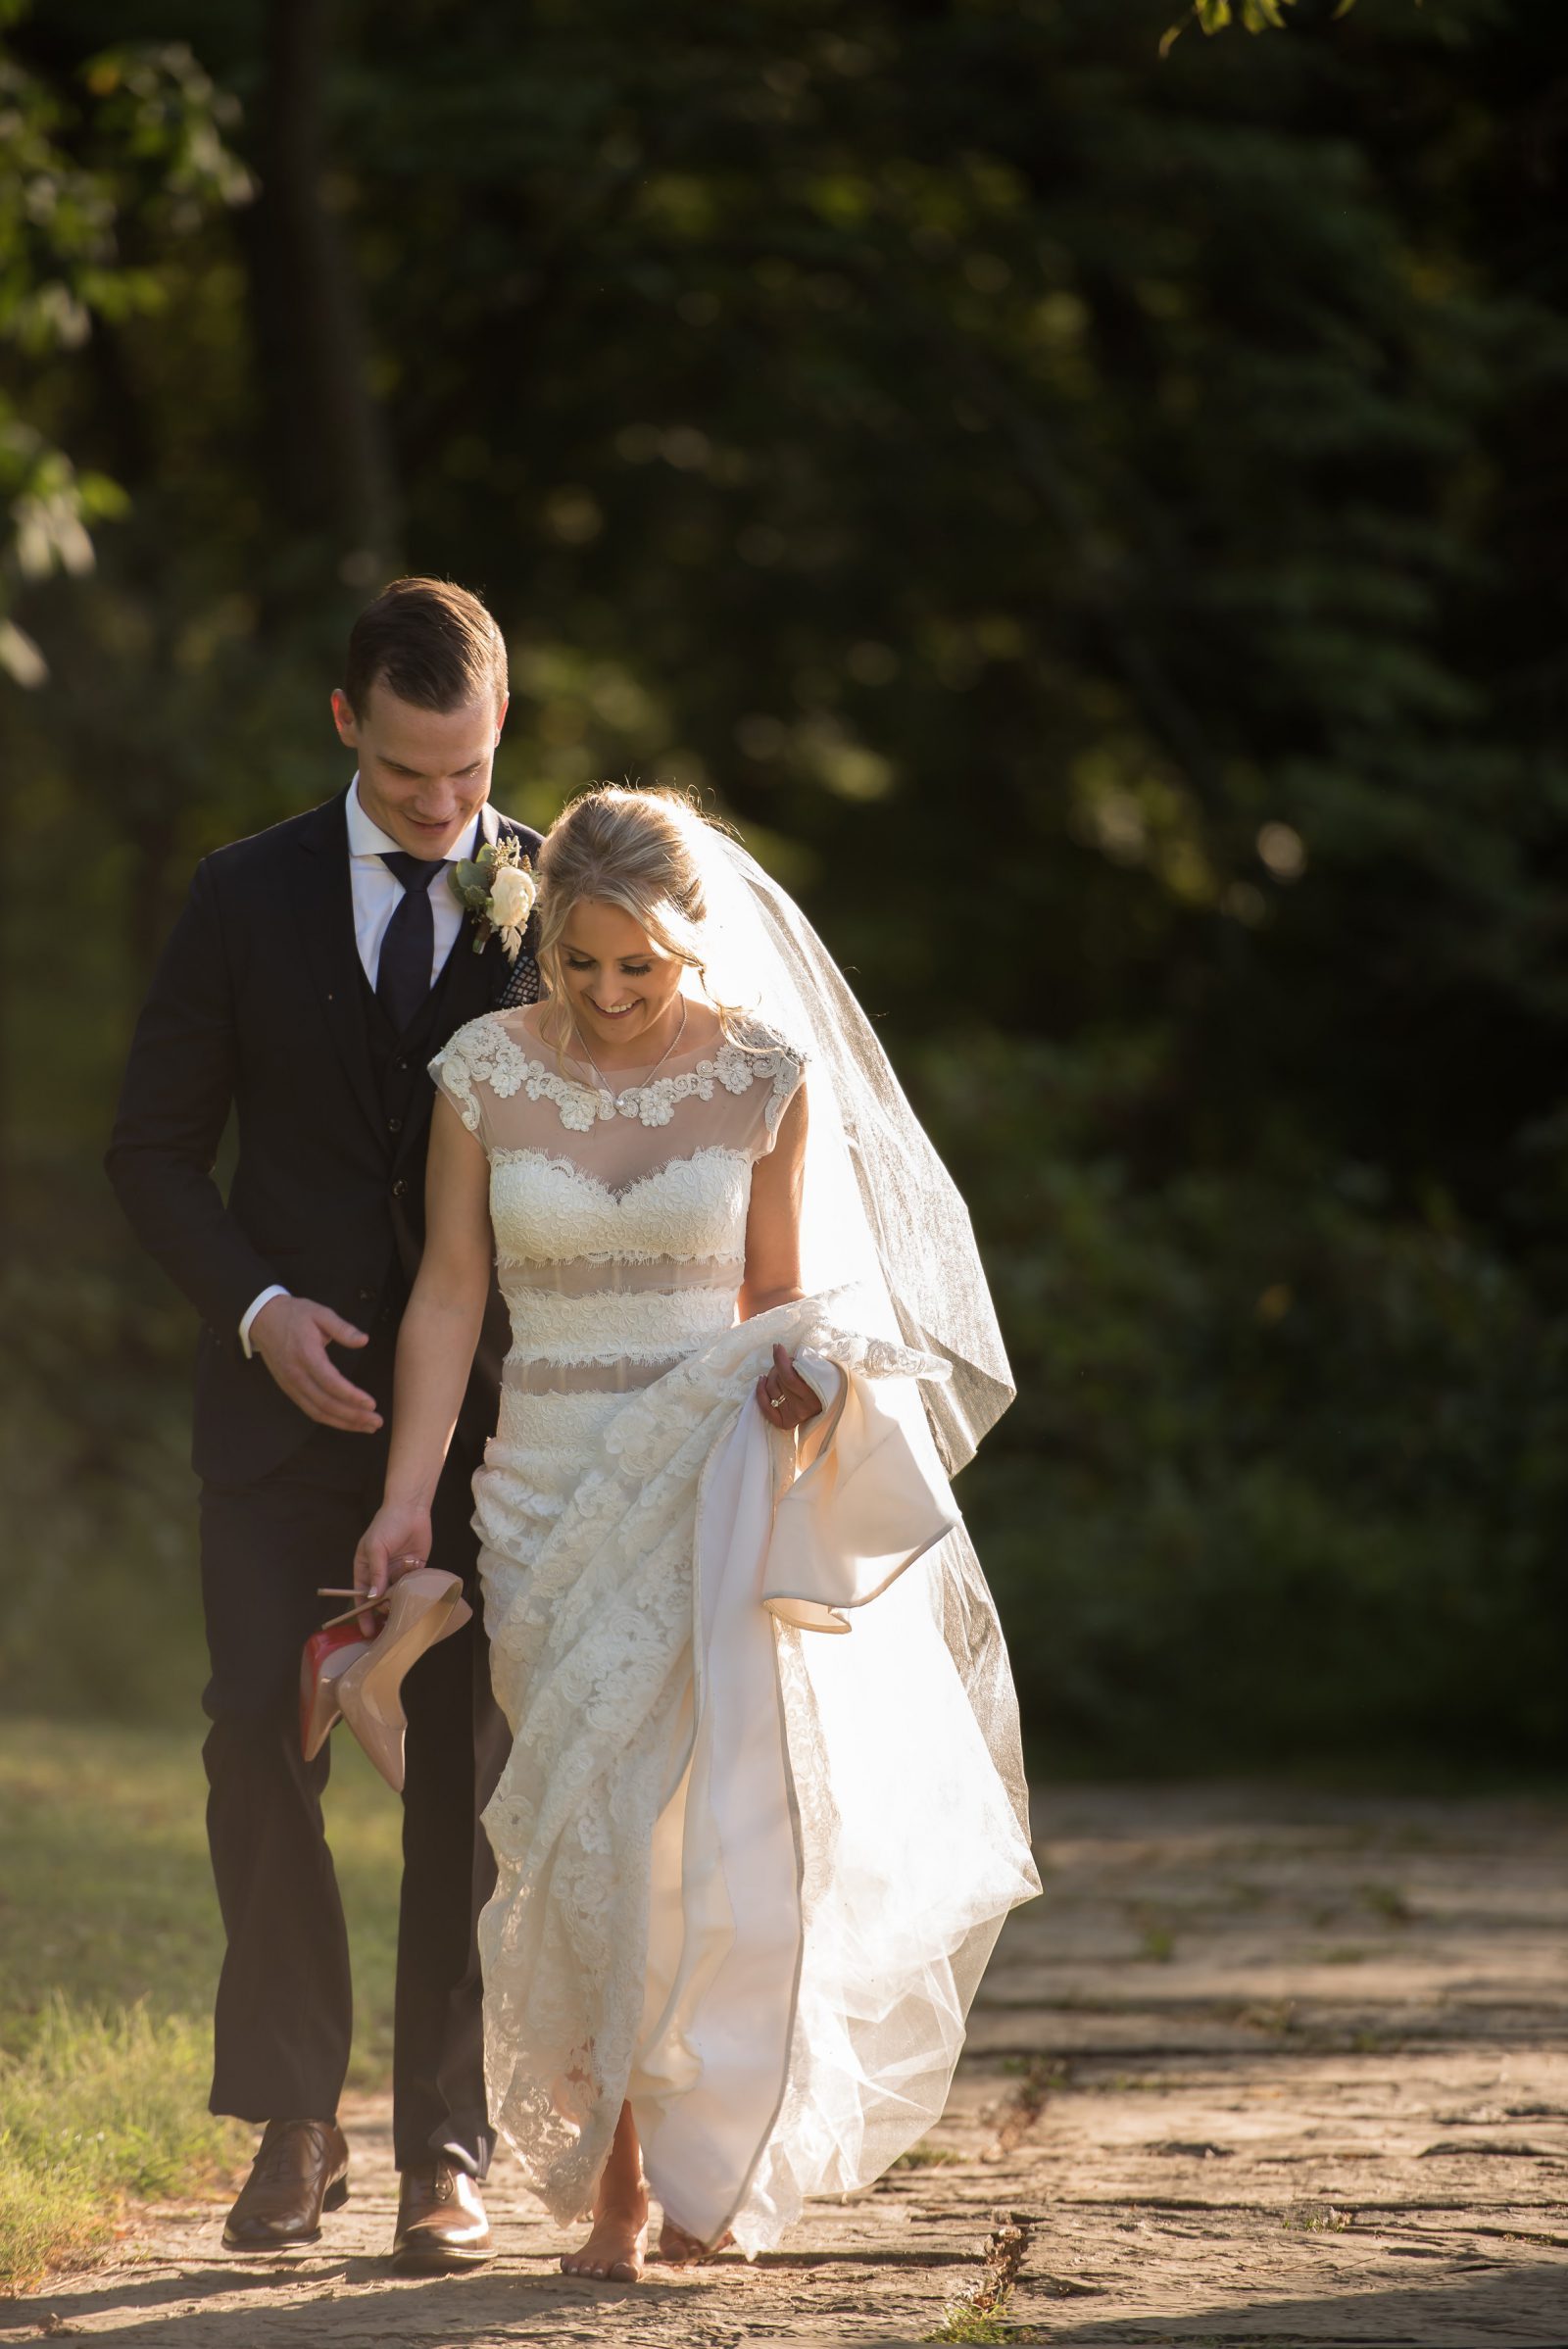 Groom and barefoot bride holding her Louboutins walk along path at Philander Chase Knox Estate during wedding portraits. Photo by Christie Green Photography